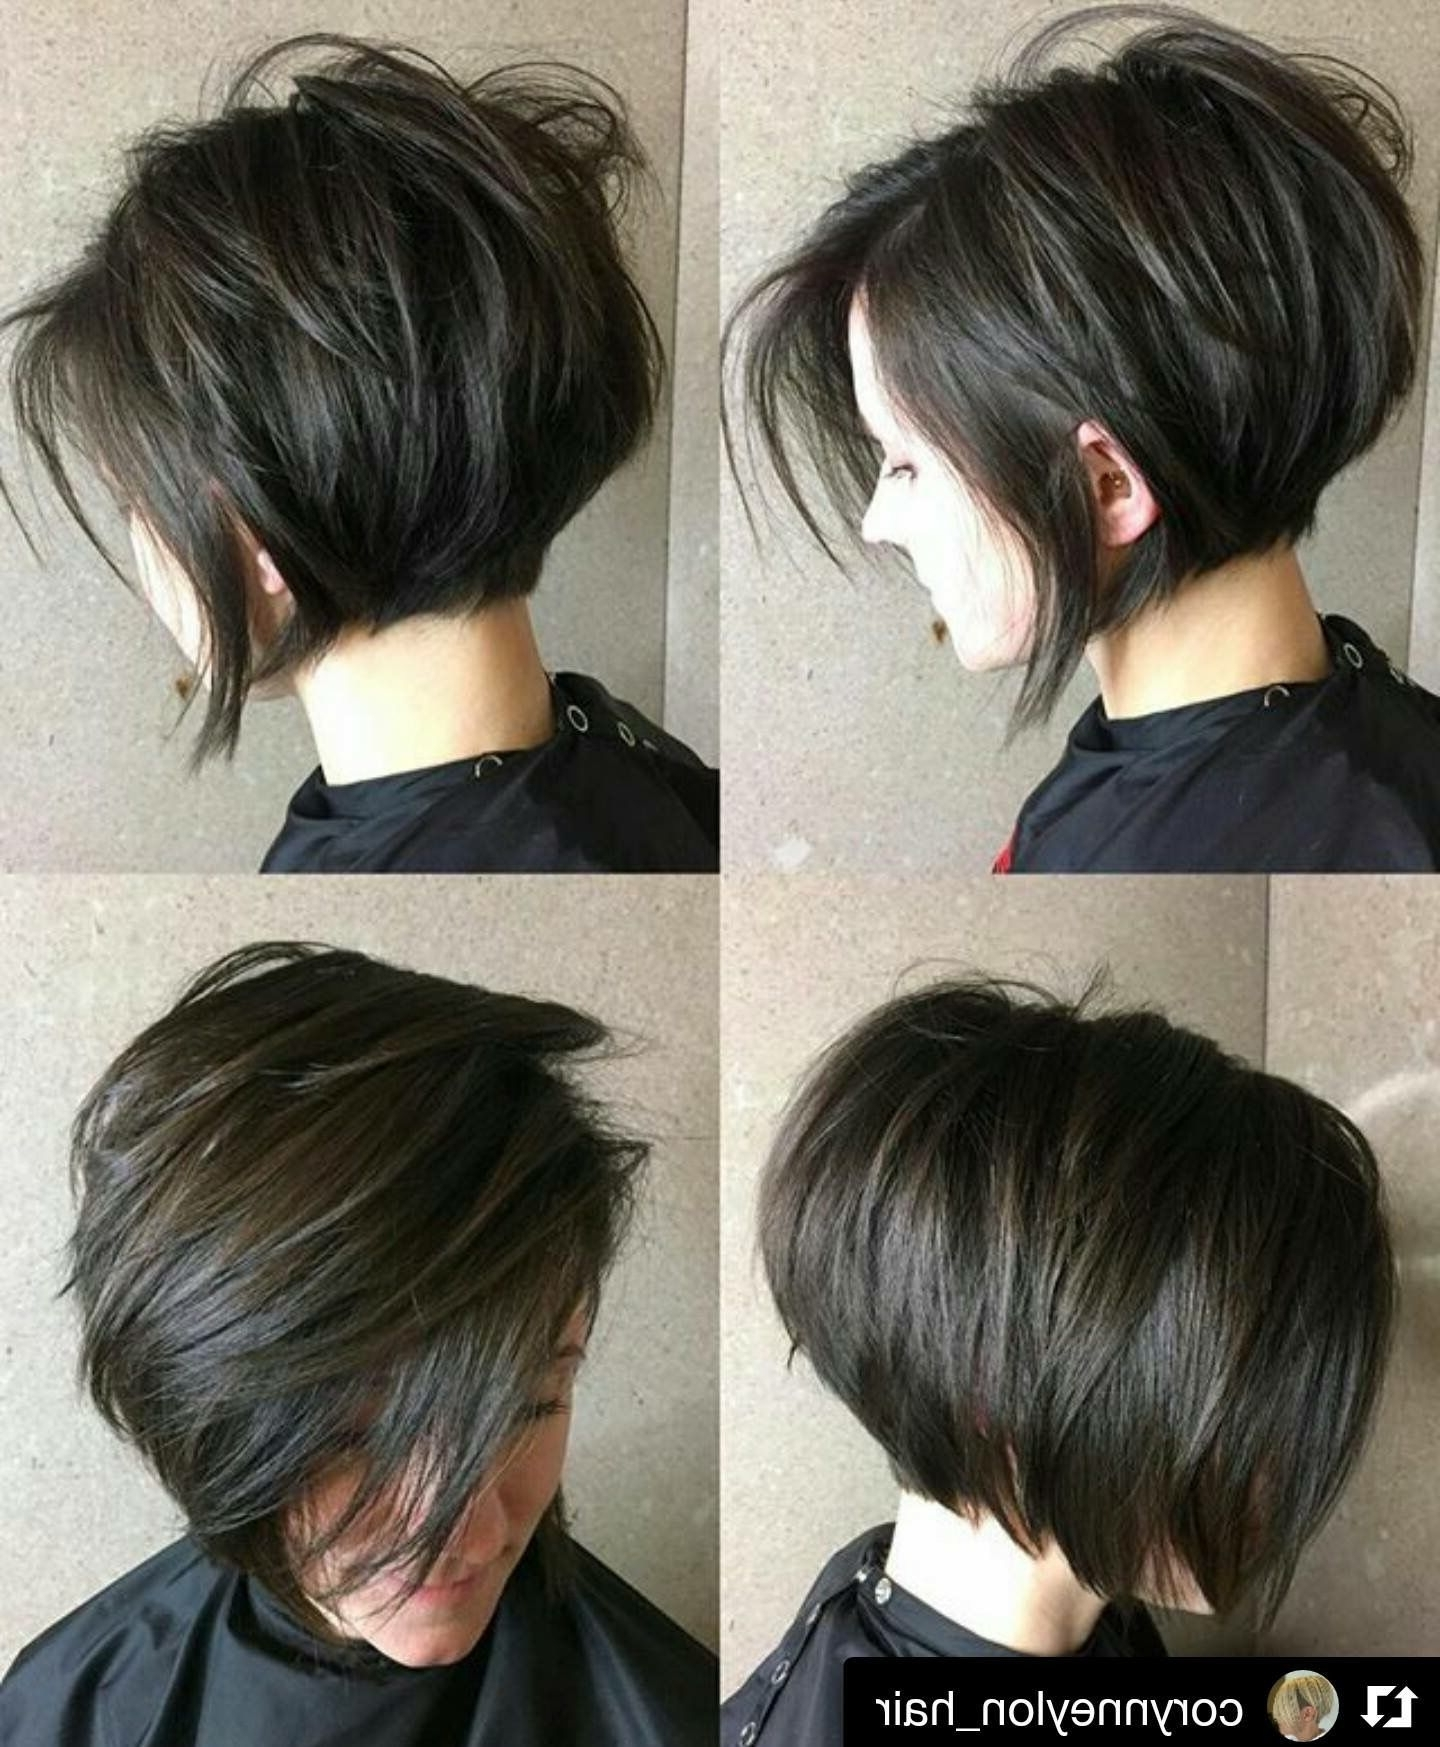 Short N Cute | Short Hair | Pinterest | Hair Style, Short Hair And Intended For 2018 Pixie Bob Haircuts (View 7 of 15)